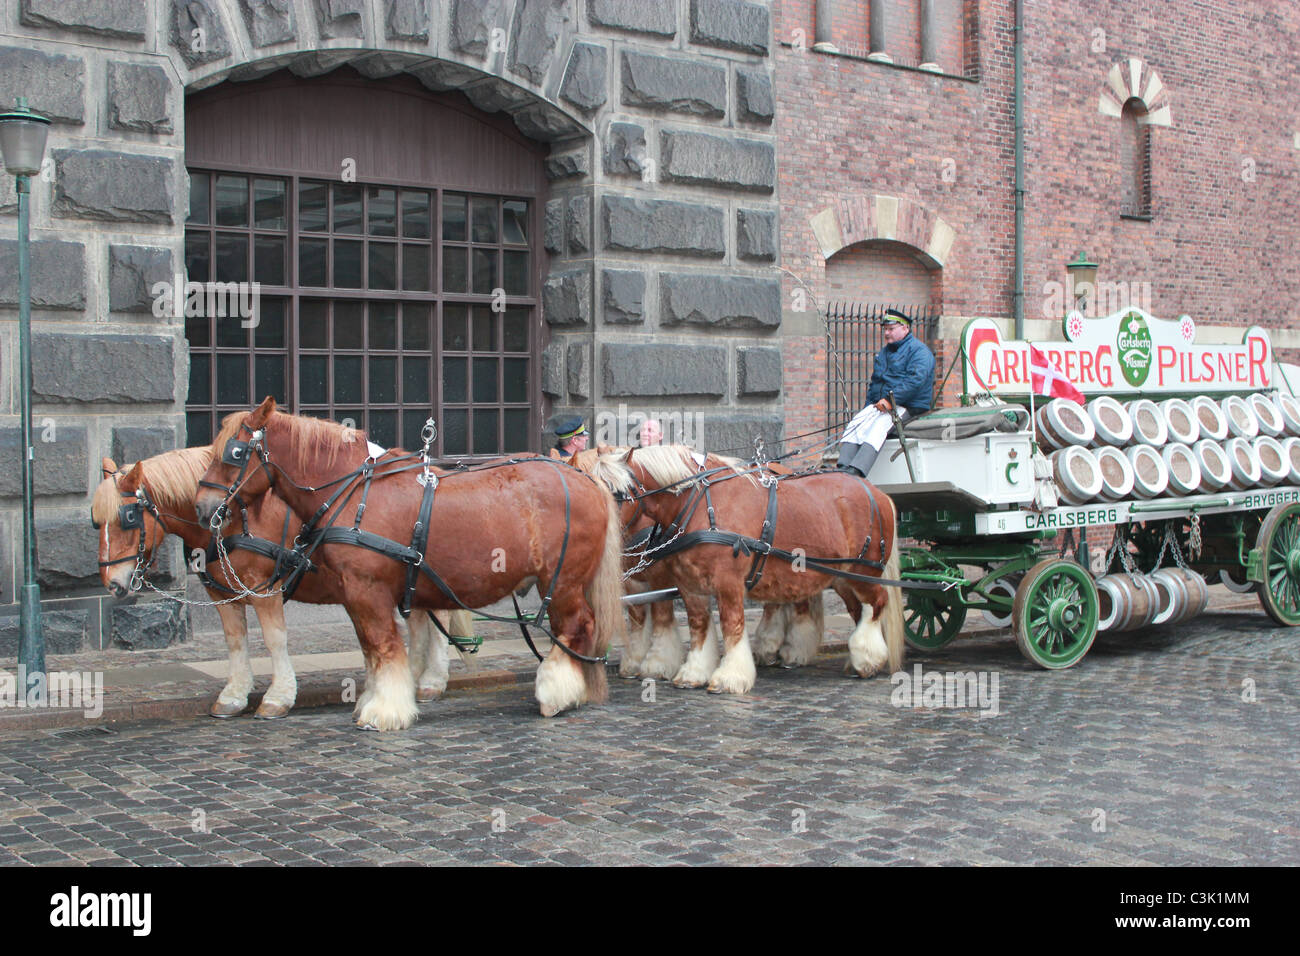 Carlsberg´s horses with a driver and load of beer - Stock Image